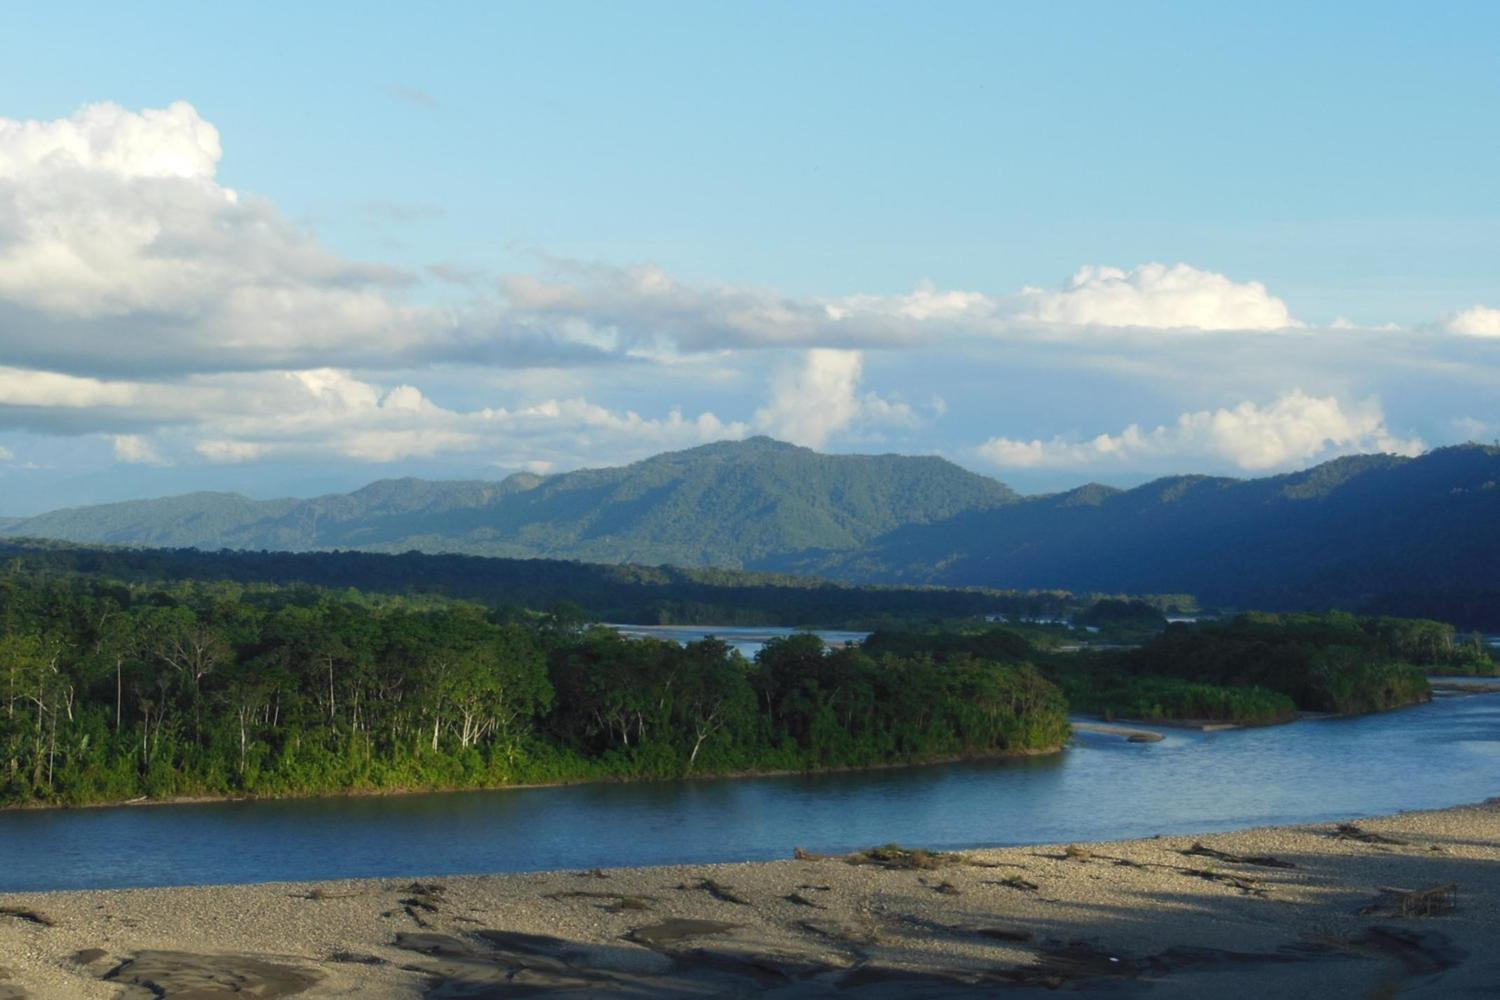 Beautiful views of the Alto Madre de Dios river and the Andean foothills, taken from the Manu Learning Center